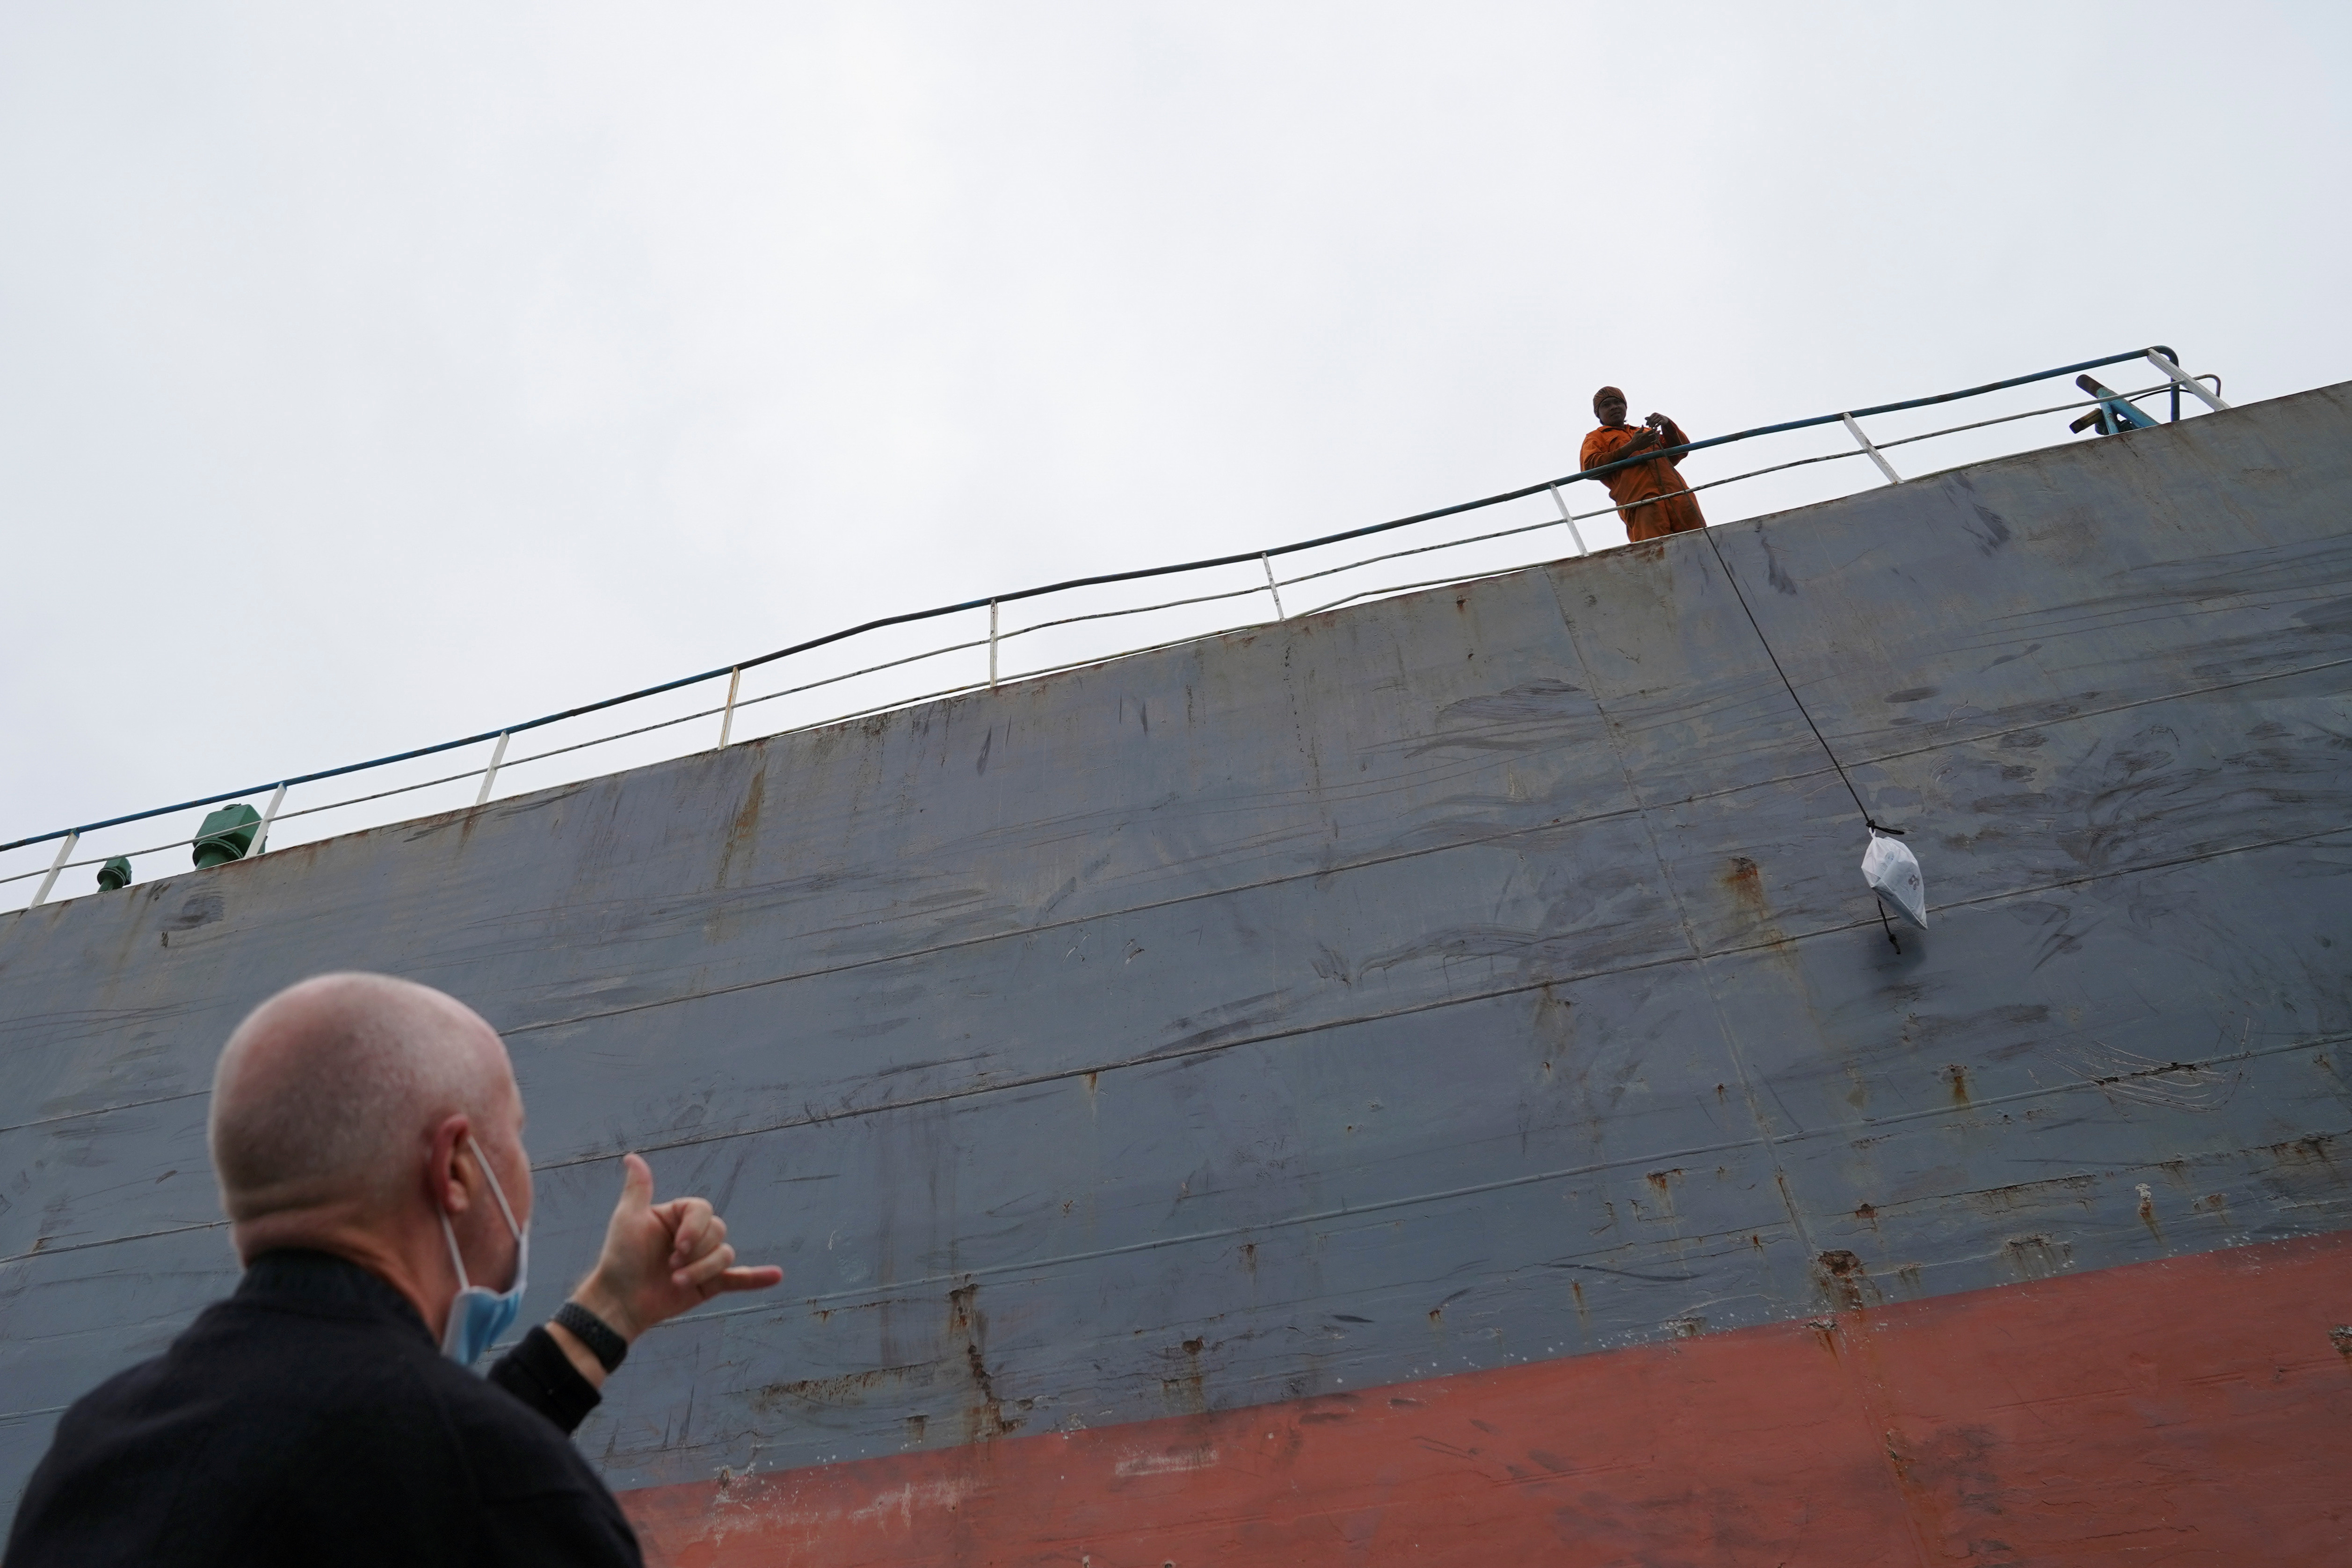 Reverend Stephen Miller of the Mission to Seafarers gestures at a sailor pulling up a bag on a bulk carrier, during a trip to deliver supplies to those stranded on visiting cargo vessels due to the coronavirus disease (COVID-19) pandemic, in Hong Kong, China March 22, 2021. Picture taken March 22, 2021. REUTERS/Lam Yik - RC2PKM91E4B6